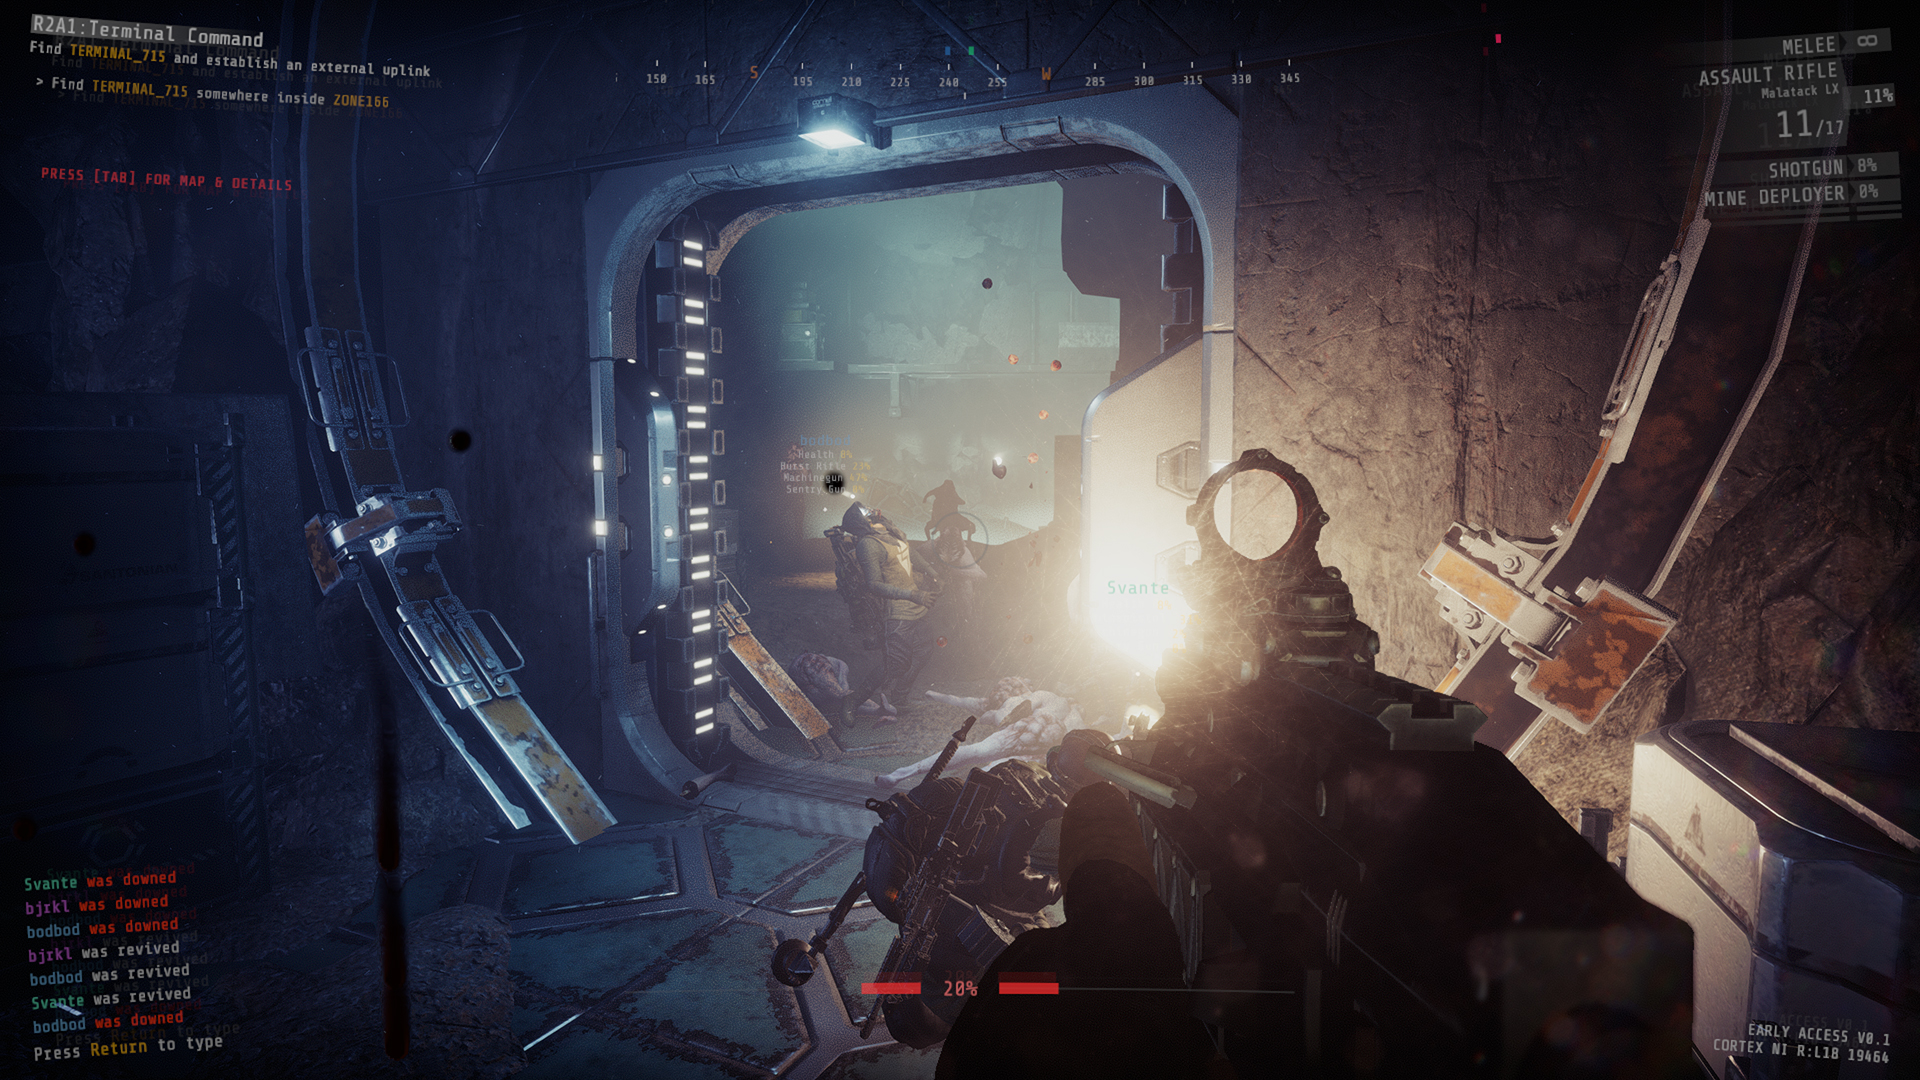 GTFO infection preview gameplay early access March 31, Ulf Andersson 10 Chambers Collective